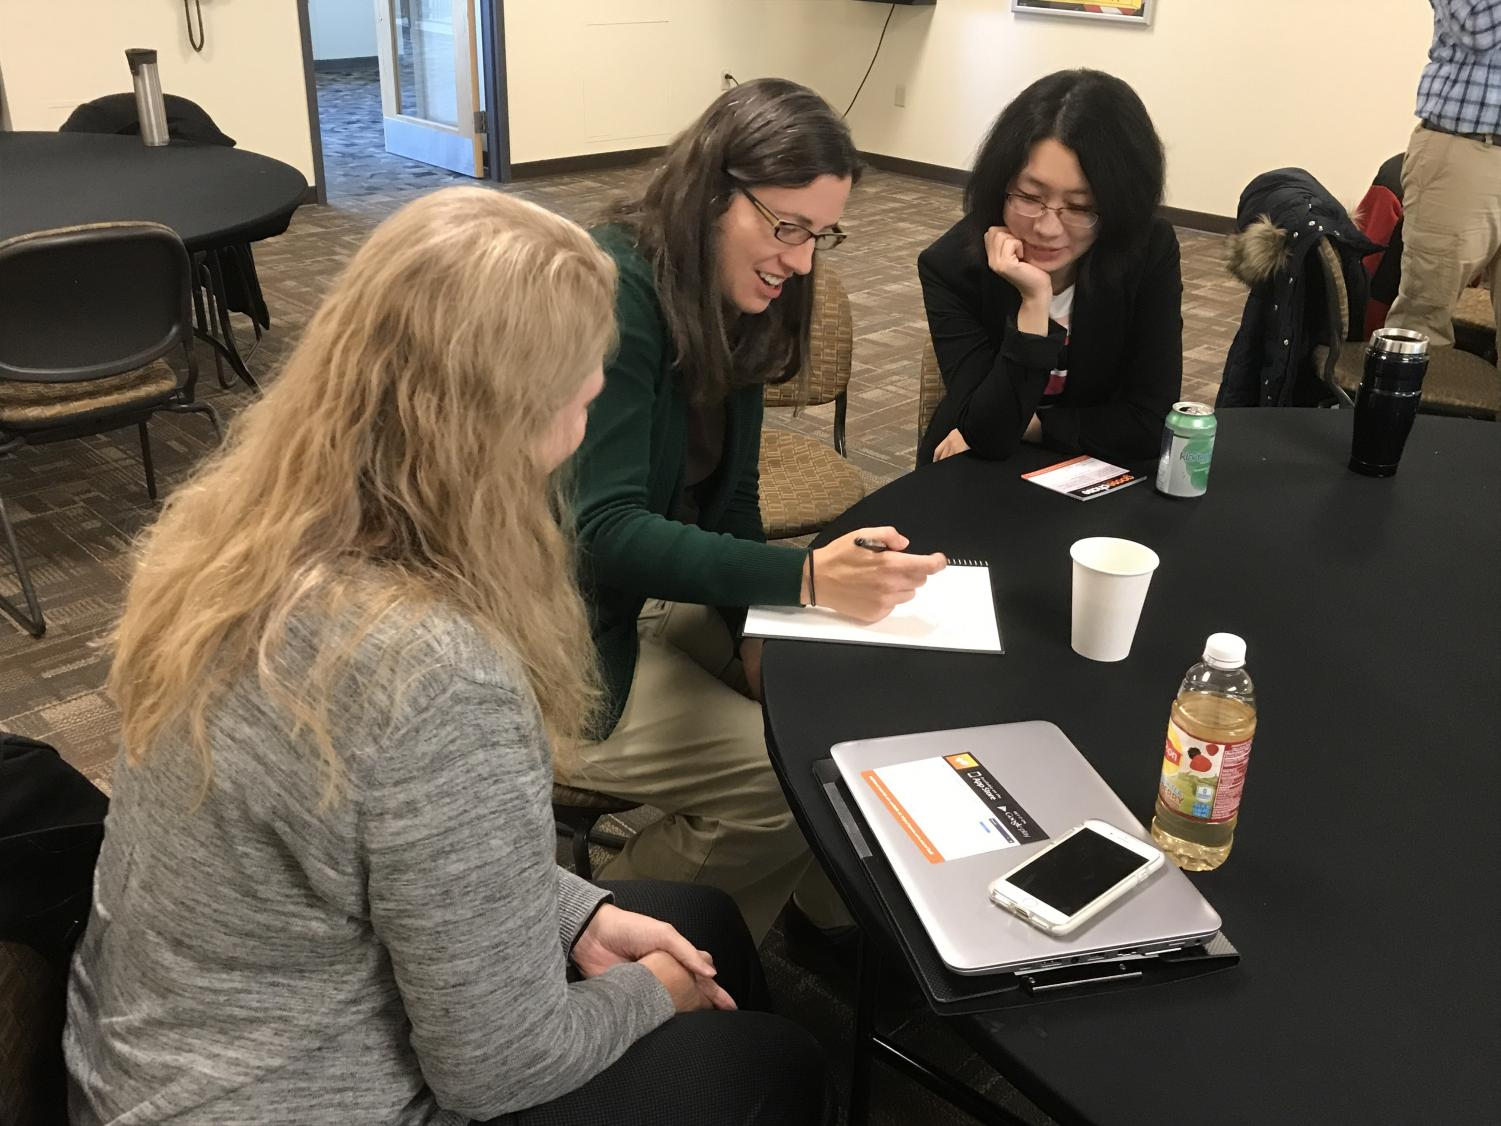 Professors Yao Fu and Karla Saeger (left and far right) discuss their thoughts with librarian Diana Schull (center) after the GooseChase seminar